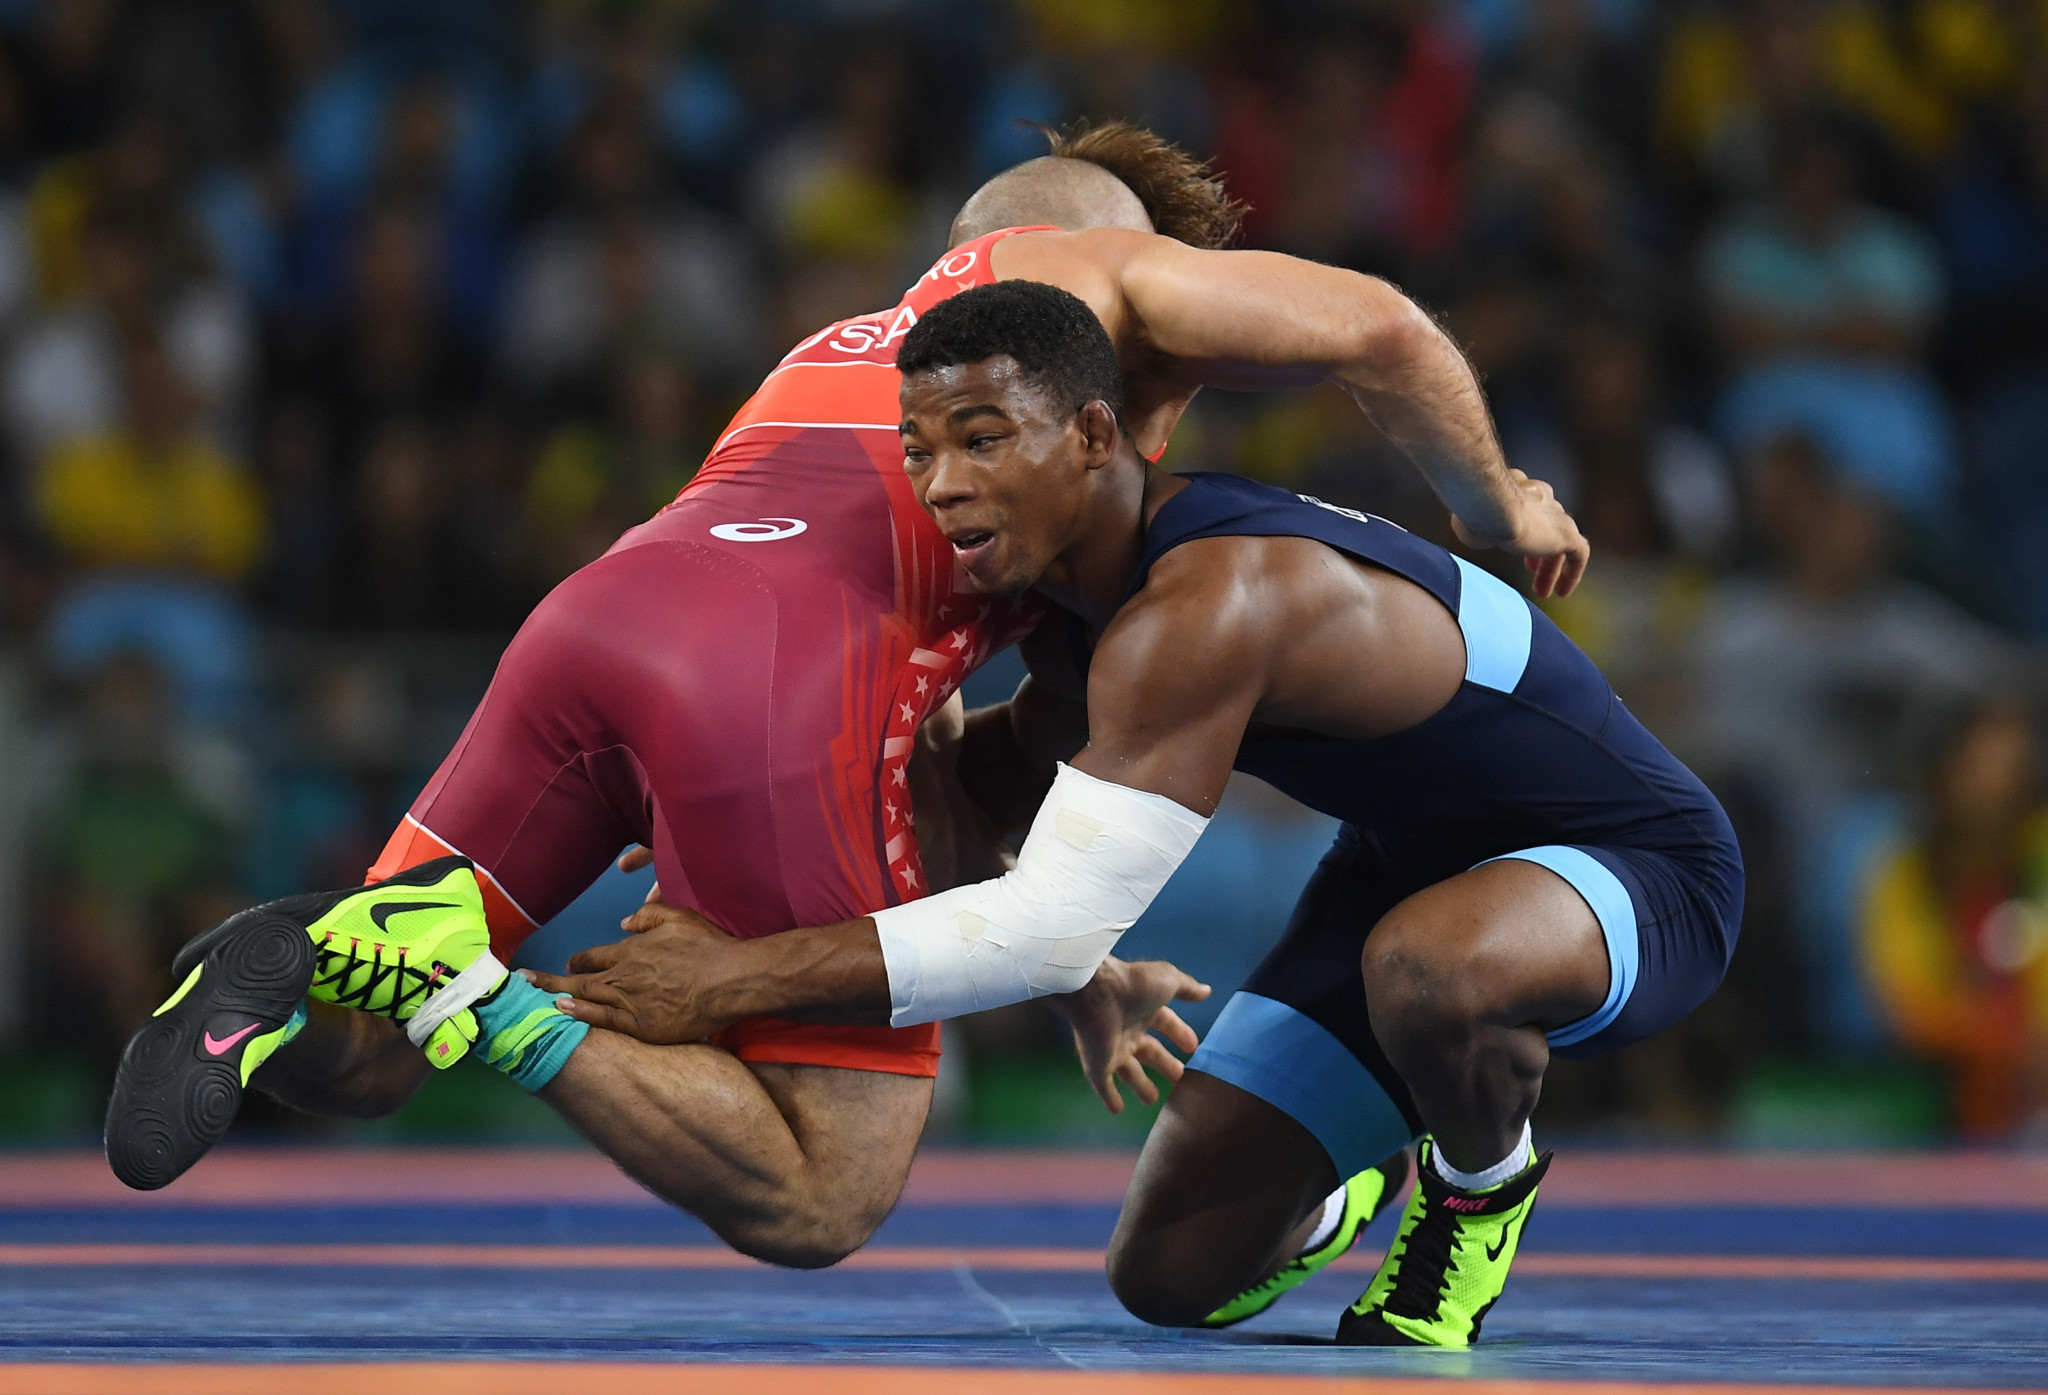 Frank Chamizo Marquez is aiming to secure a third straight European title in Poland ©Getty Images